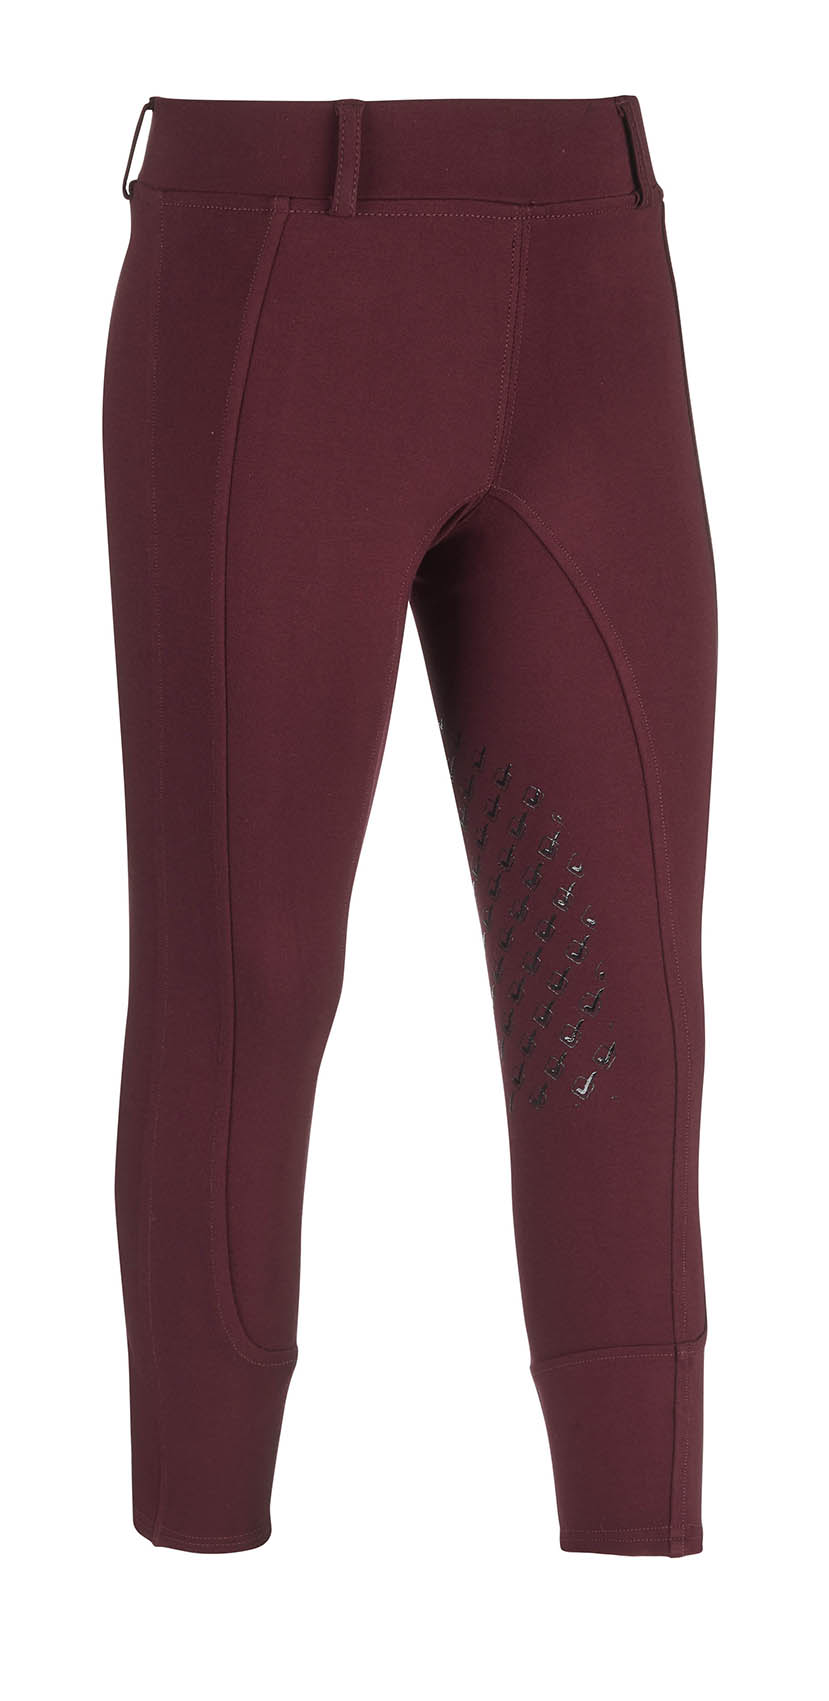 Fair Price Equestrian | Lemieux Junior Pro Breeches